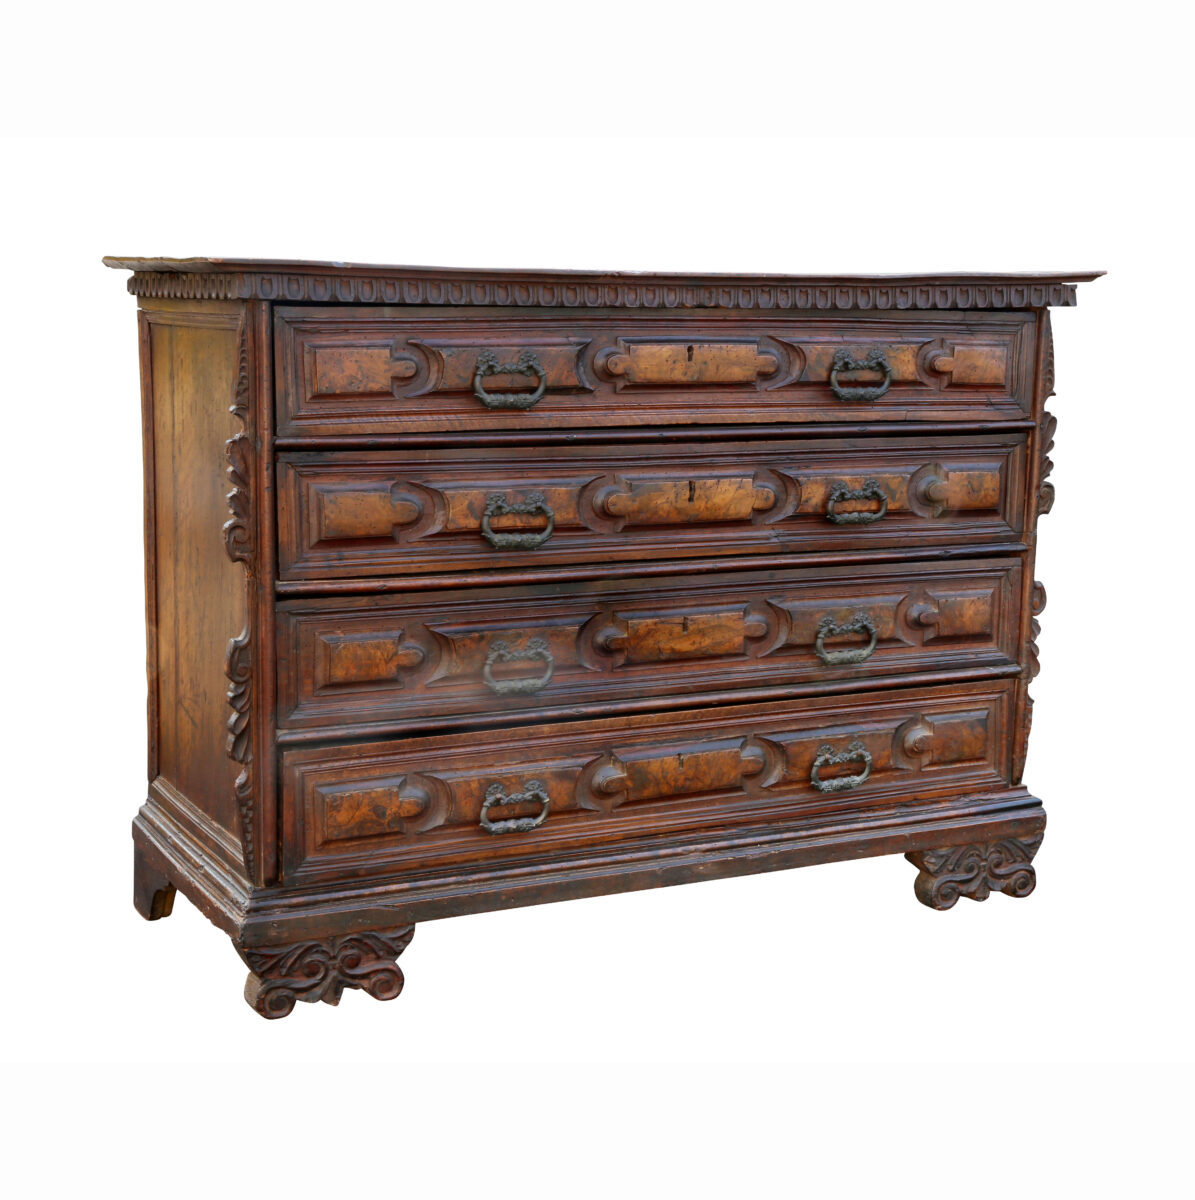 Impressive Italian Baroque Walnut and Burl Walnut Commode